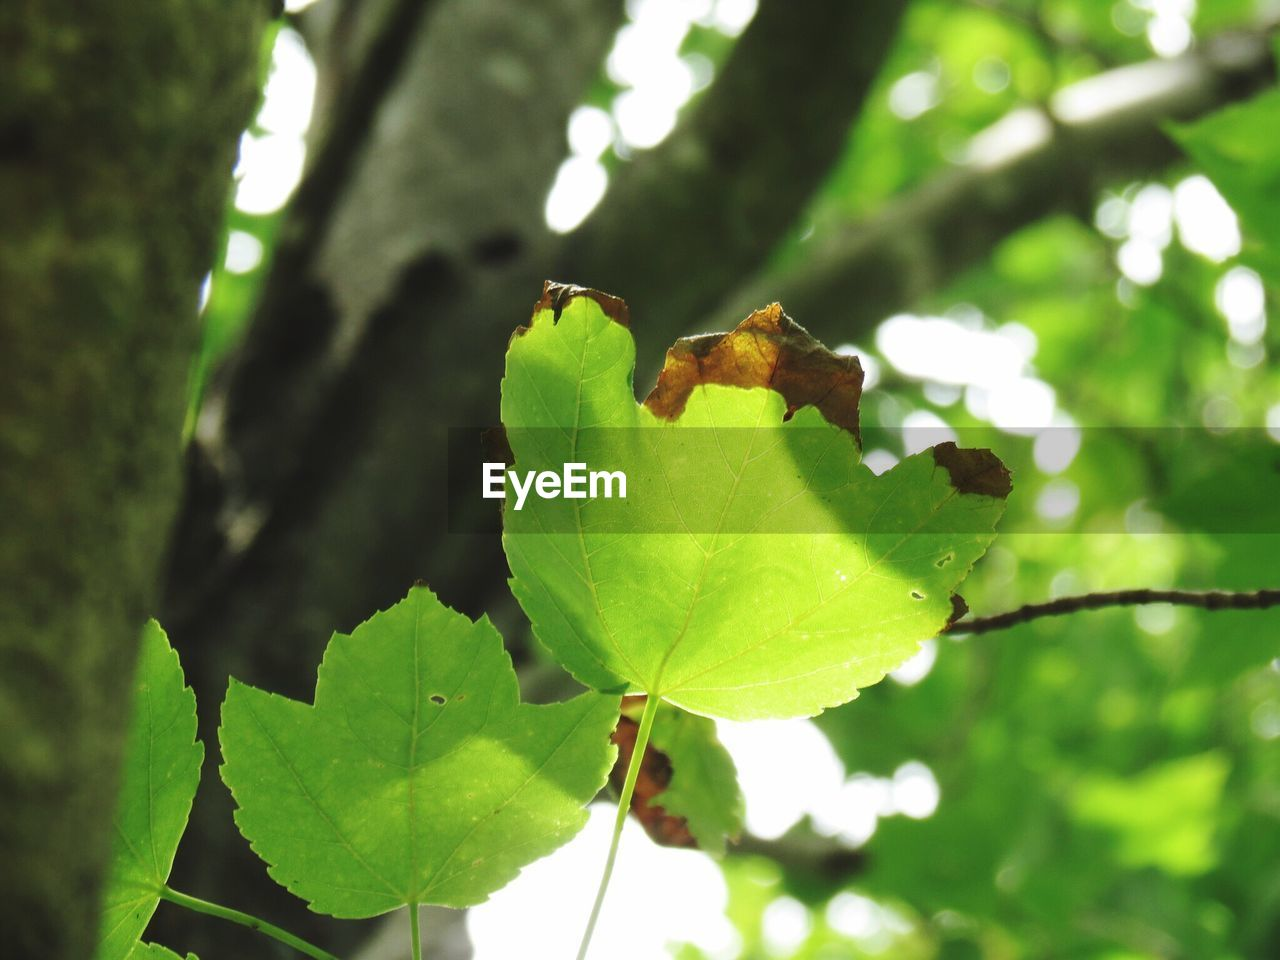 leaf, plant part, plant, tree, green color, focus on foreground, growth, animal, animal themes, animals in the wild, nature, day, animal wildlife, no people, one animal, close-up, branch, invertebrate, outdoors, insect